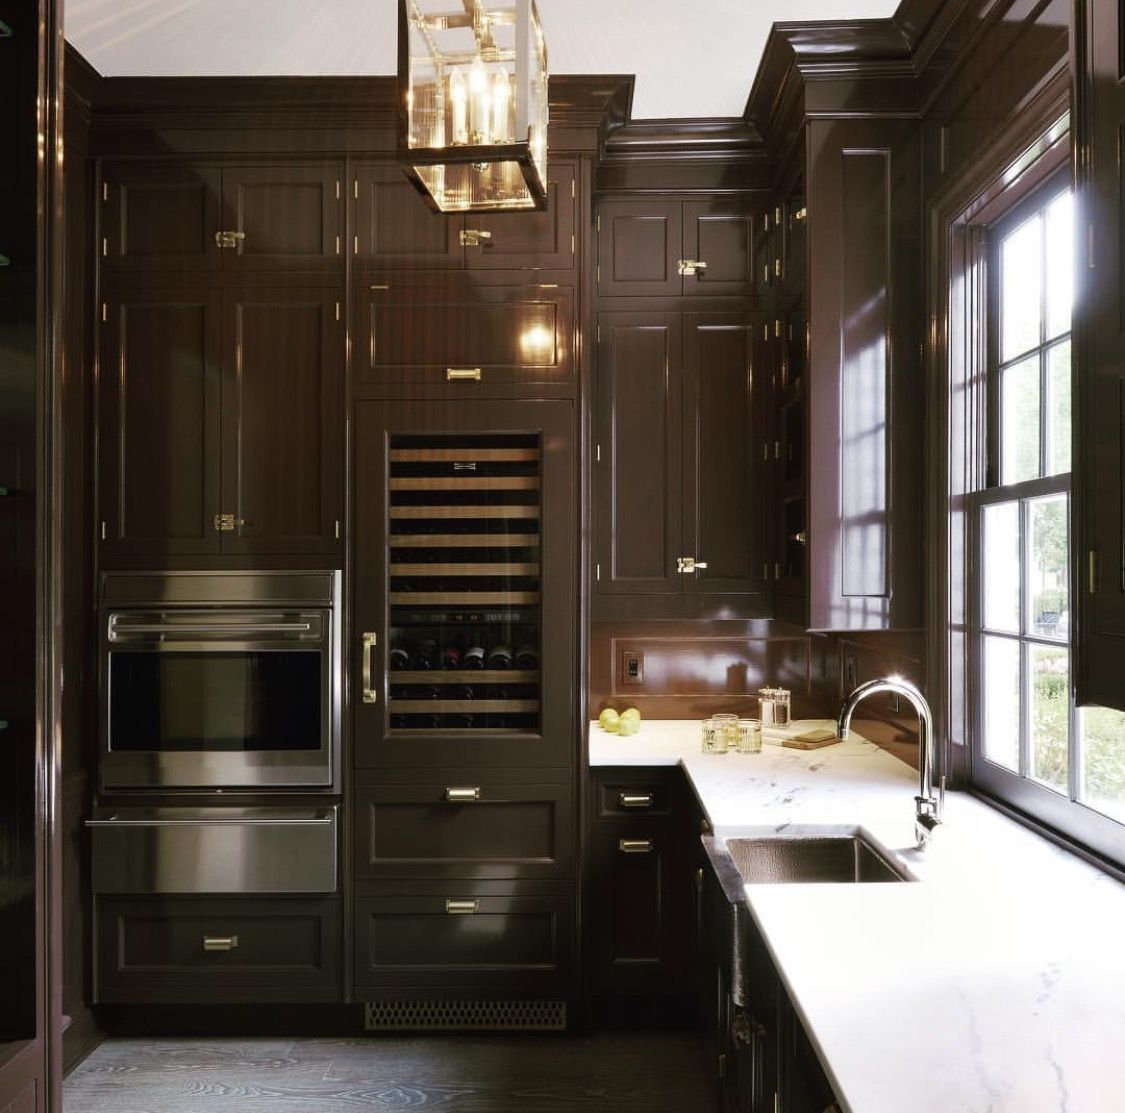 Pin By Own It Oklahoma On Kitchens High Gloss Kitchen Cabinets Lacquered Walls Gloss Kitchen Cabinets